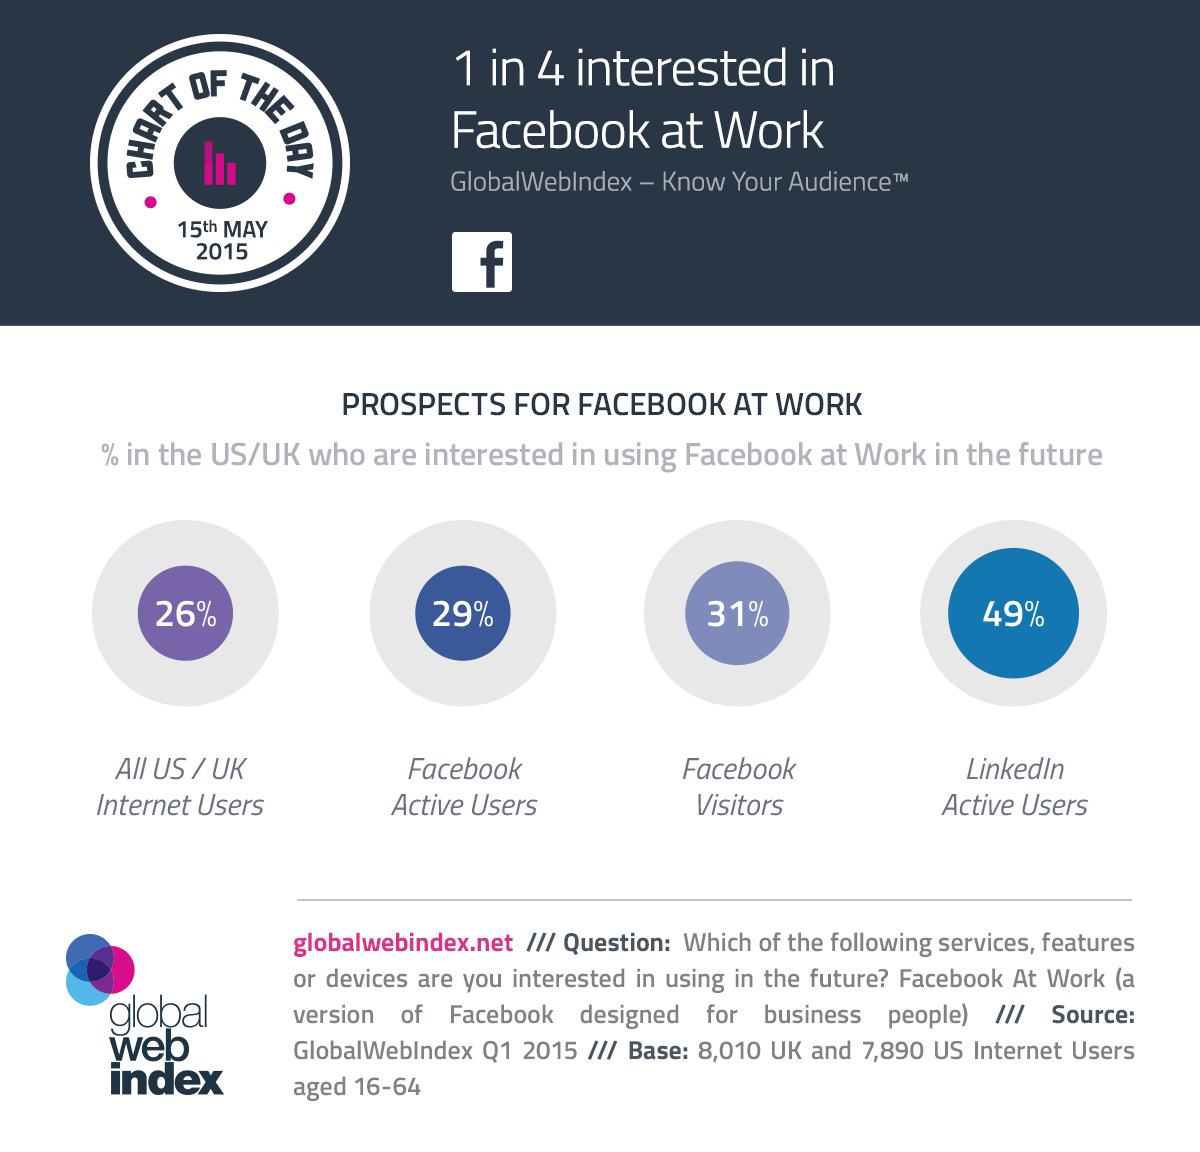 15th-May-2015-1-in-4-interested-in-Facebook-at-Work